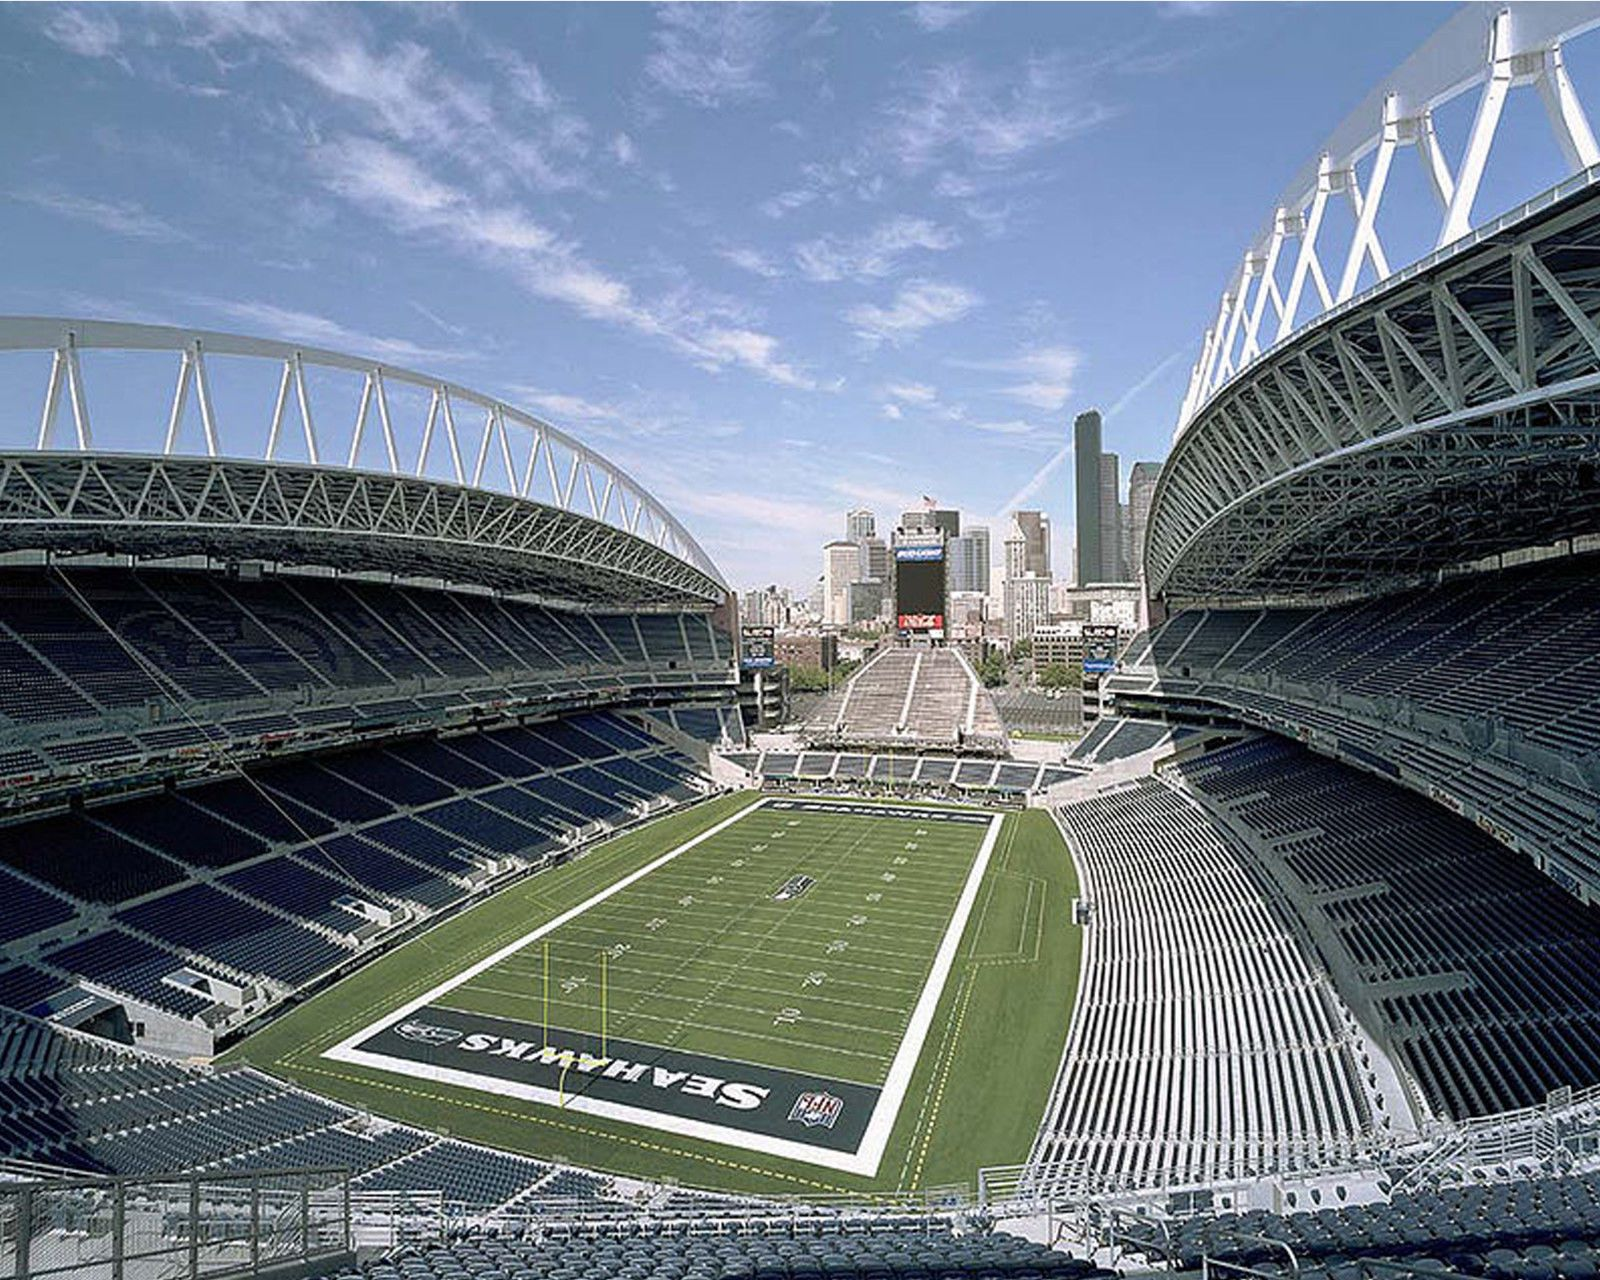 Seattle Seahawks announce CenturyLink Field expansion by 1 000 seats